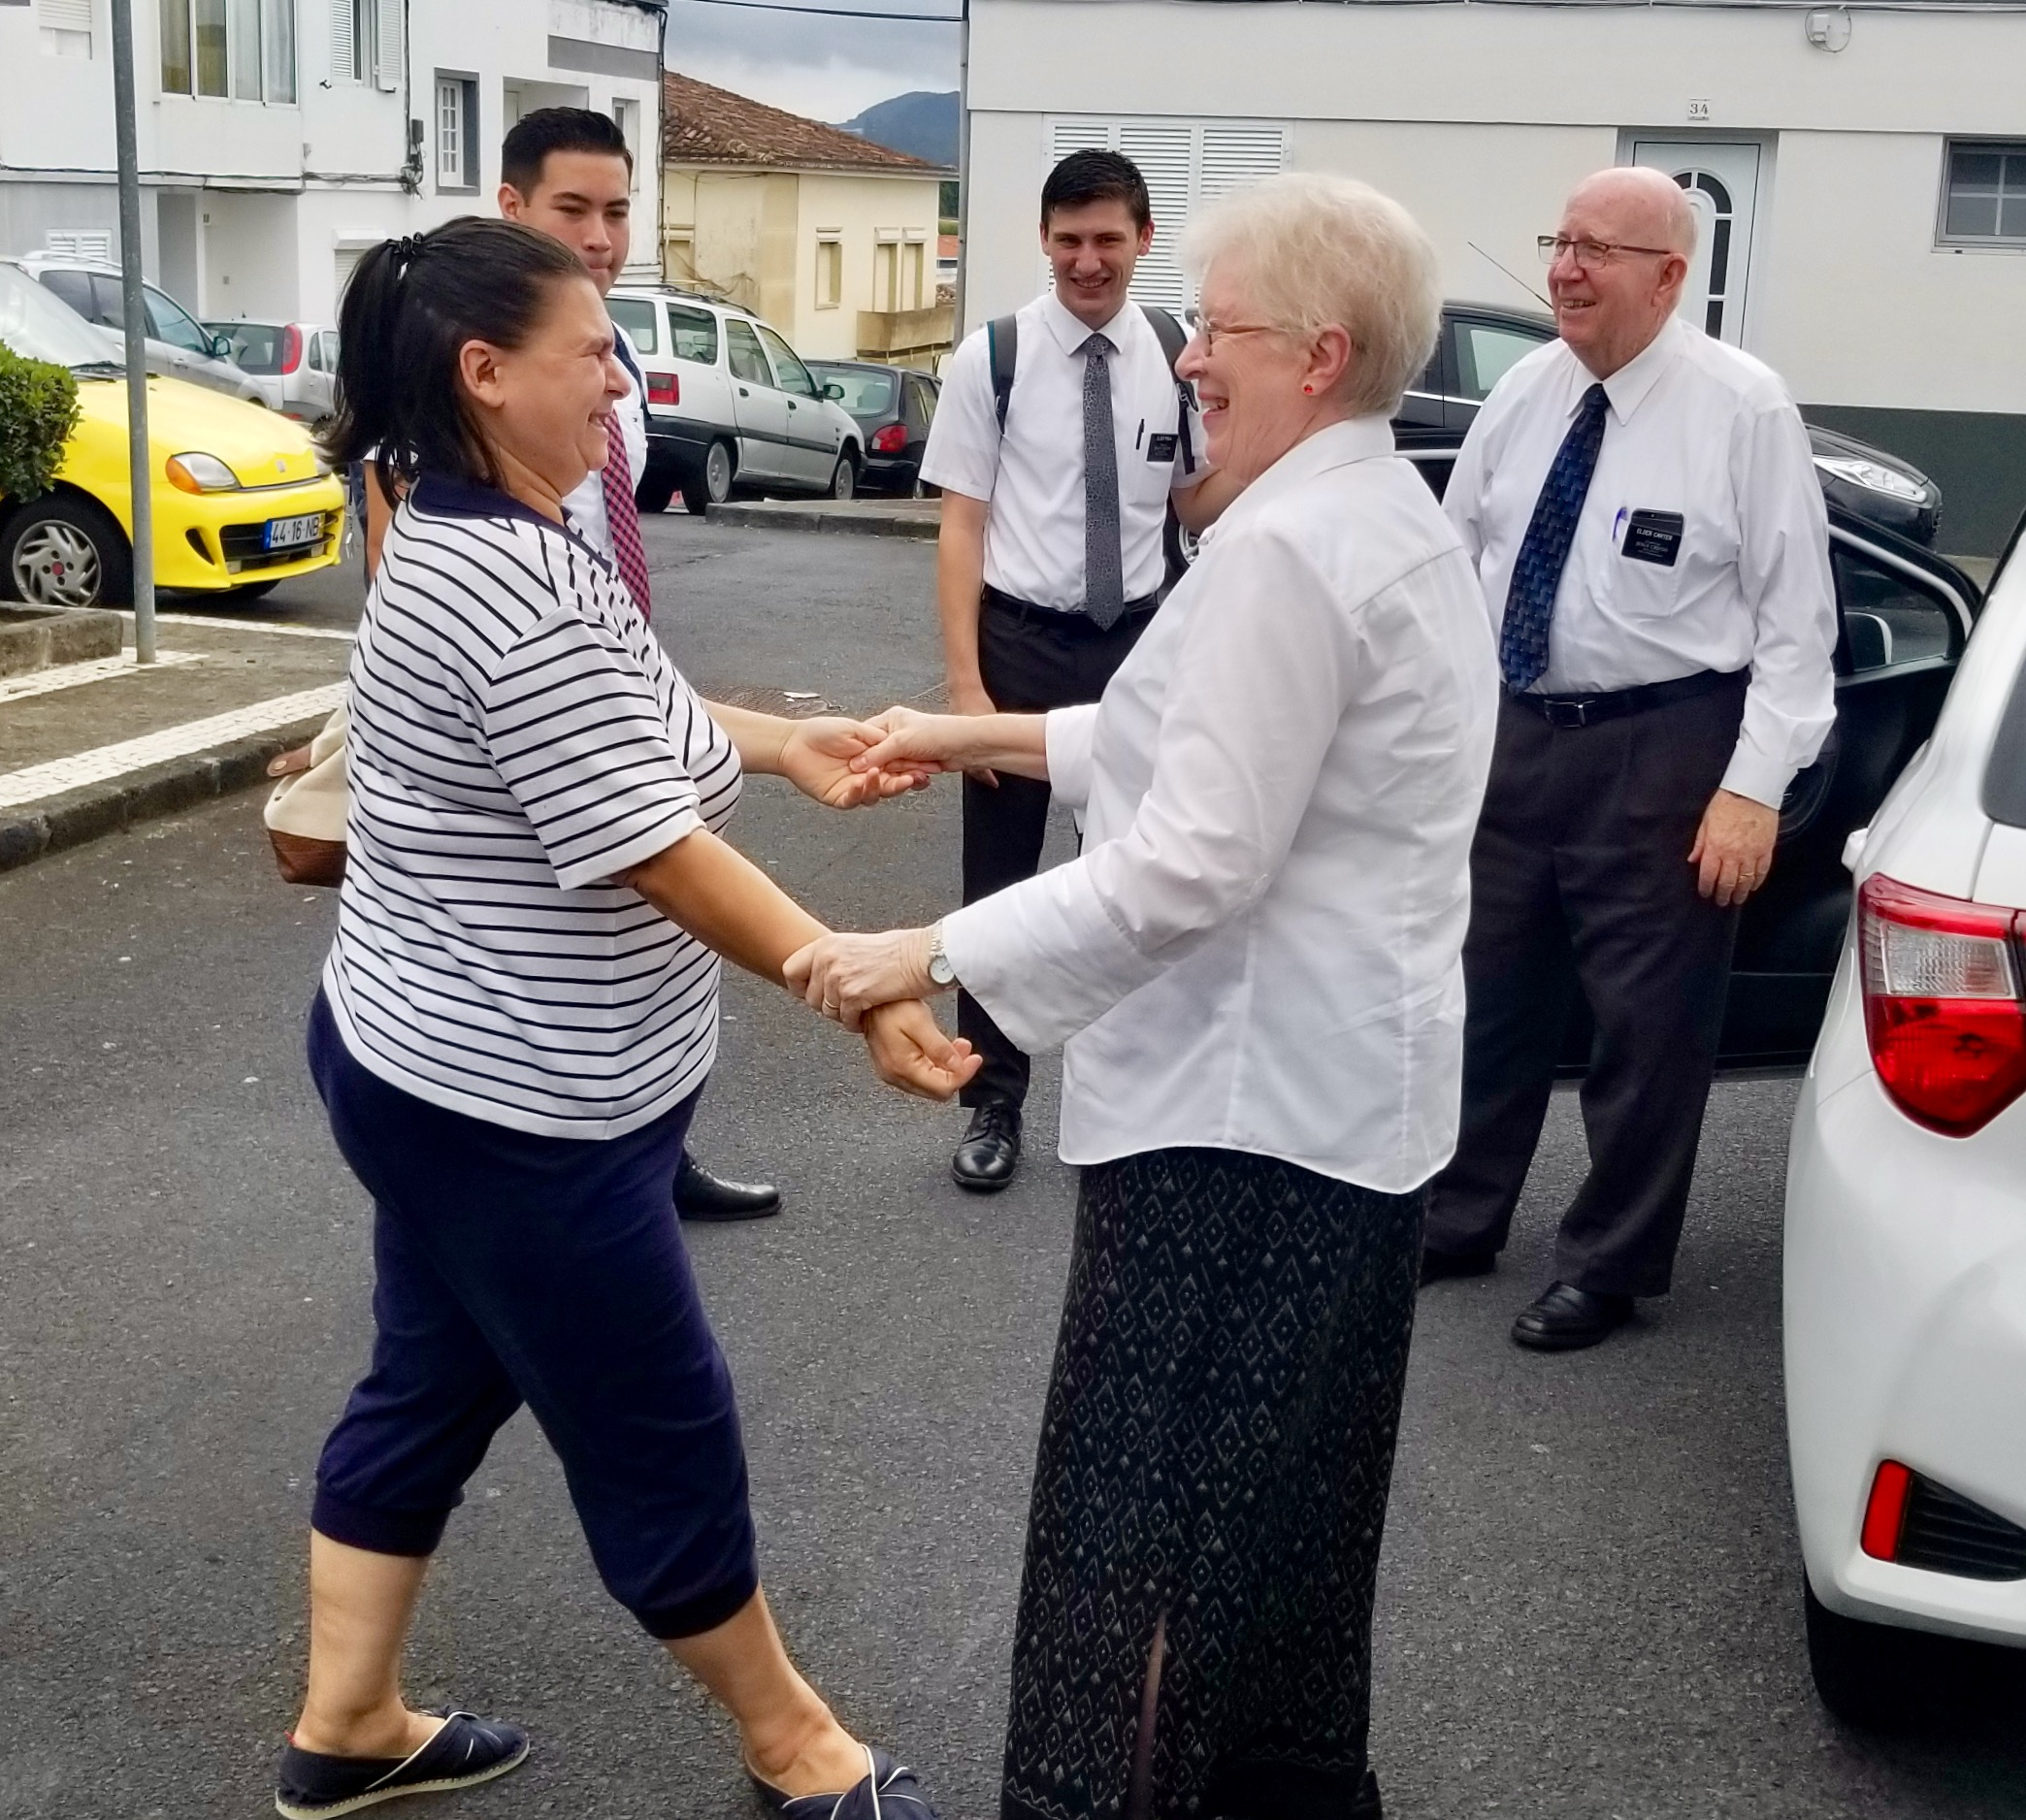 Lúcia Días, a recent convert of the Ponta Delgada Branch on the Azores' São Miguel Island, greets Sister Louise Carter on the street on Sept. 17, 2019. Behind them, from right to left, Elder Robert V. Carter, Elder Matthew Ethan Rhea and Elder Jimmy Terron.